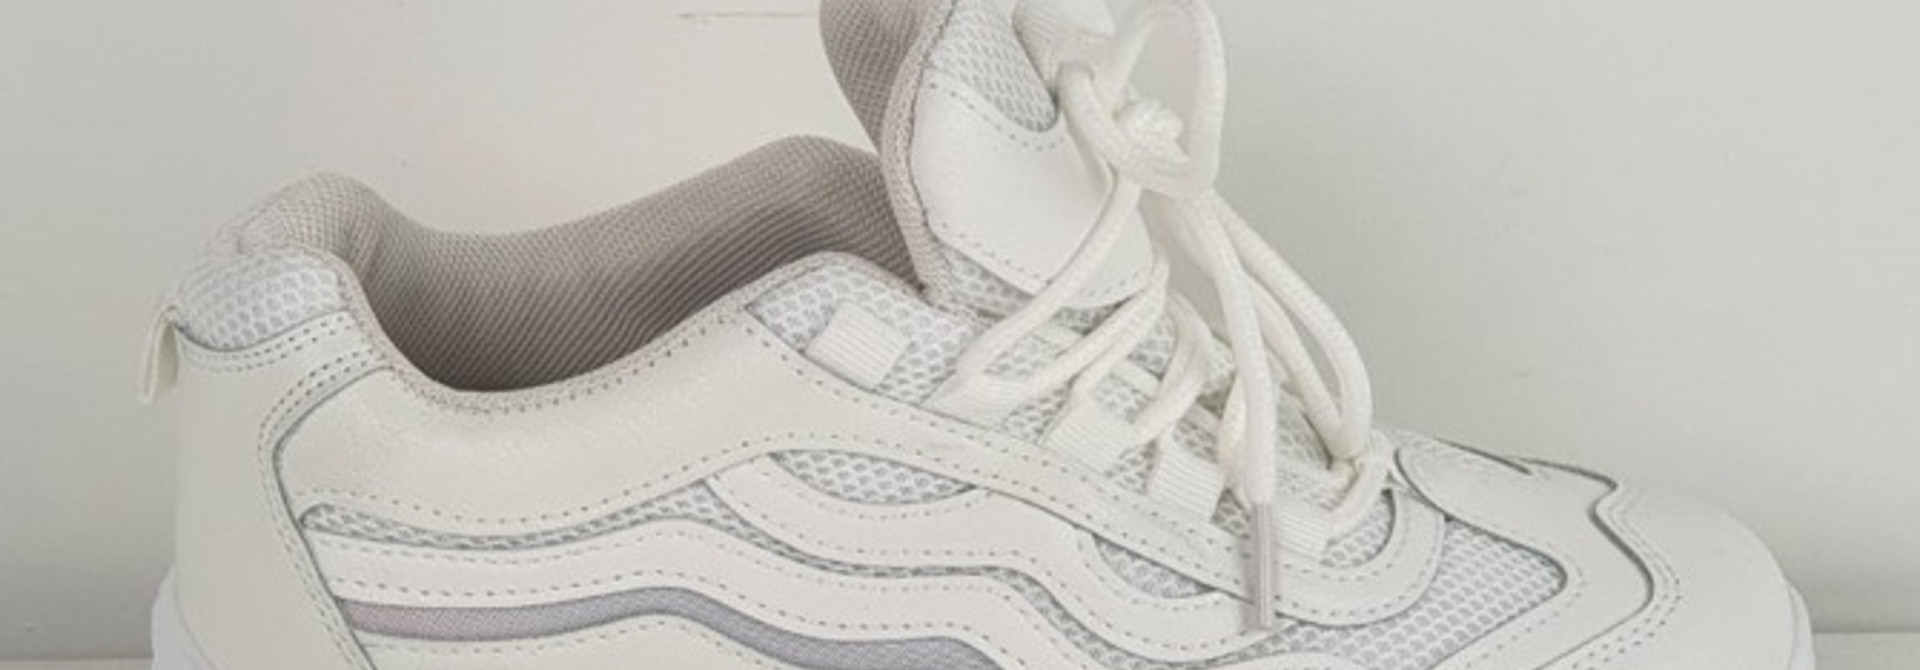 Devon sneakers White